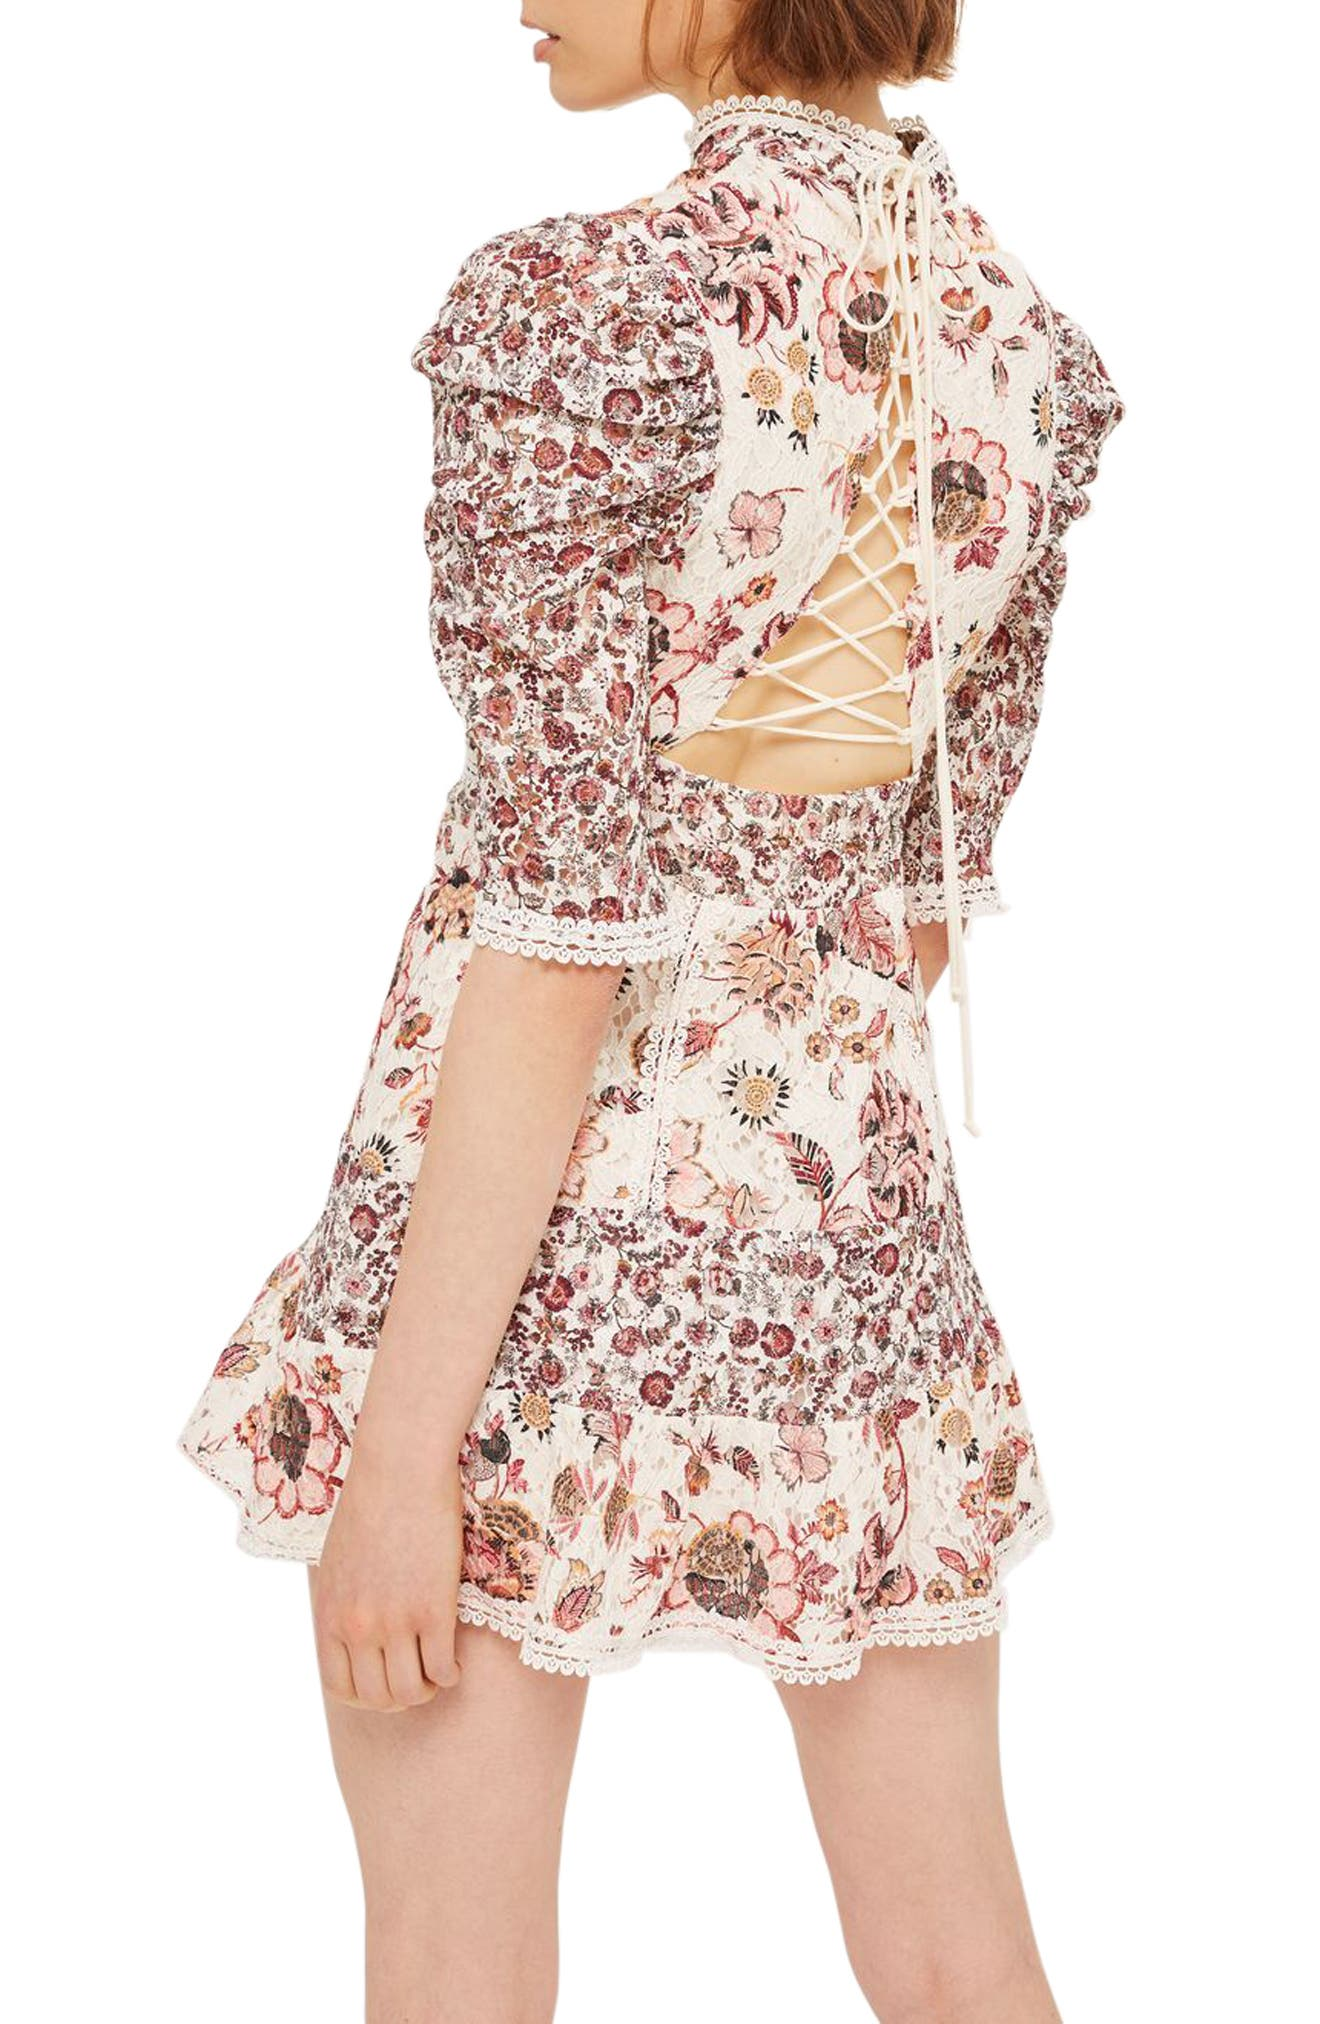 Floral Lace Strappy Back Dress,                             Alternate thumbnail 2, color,                             900